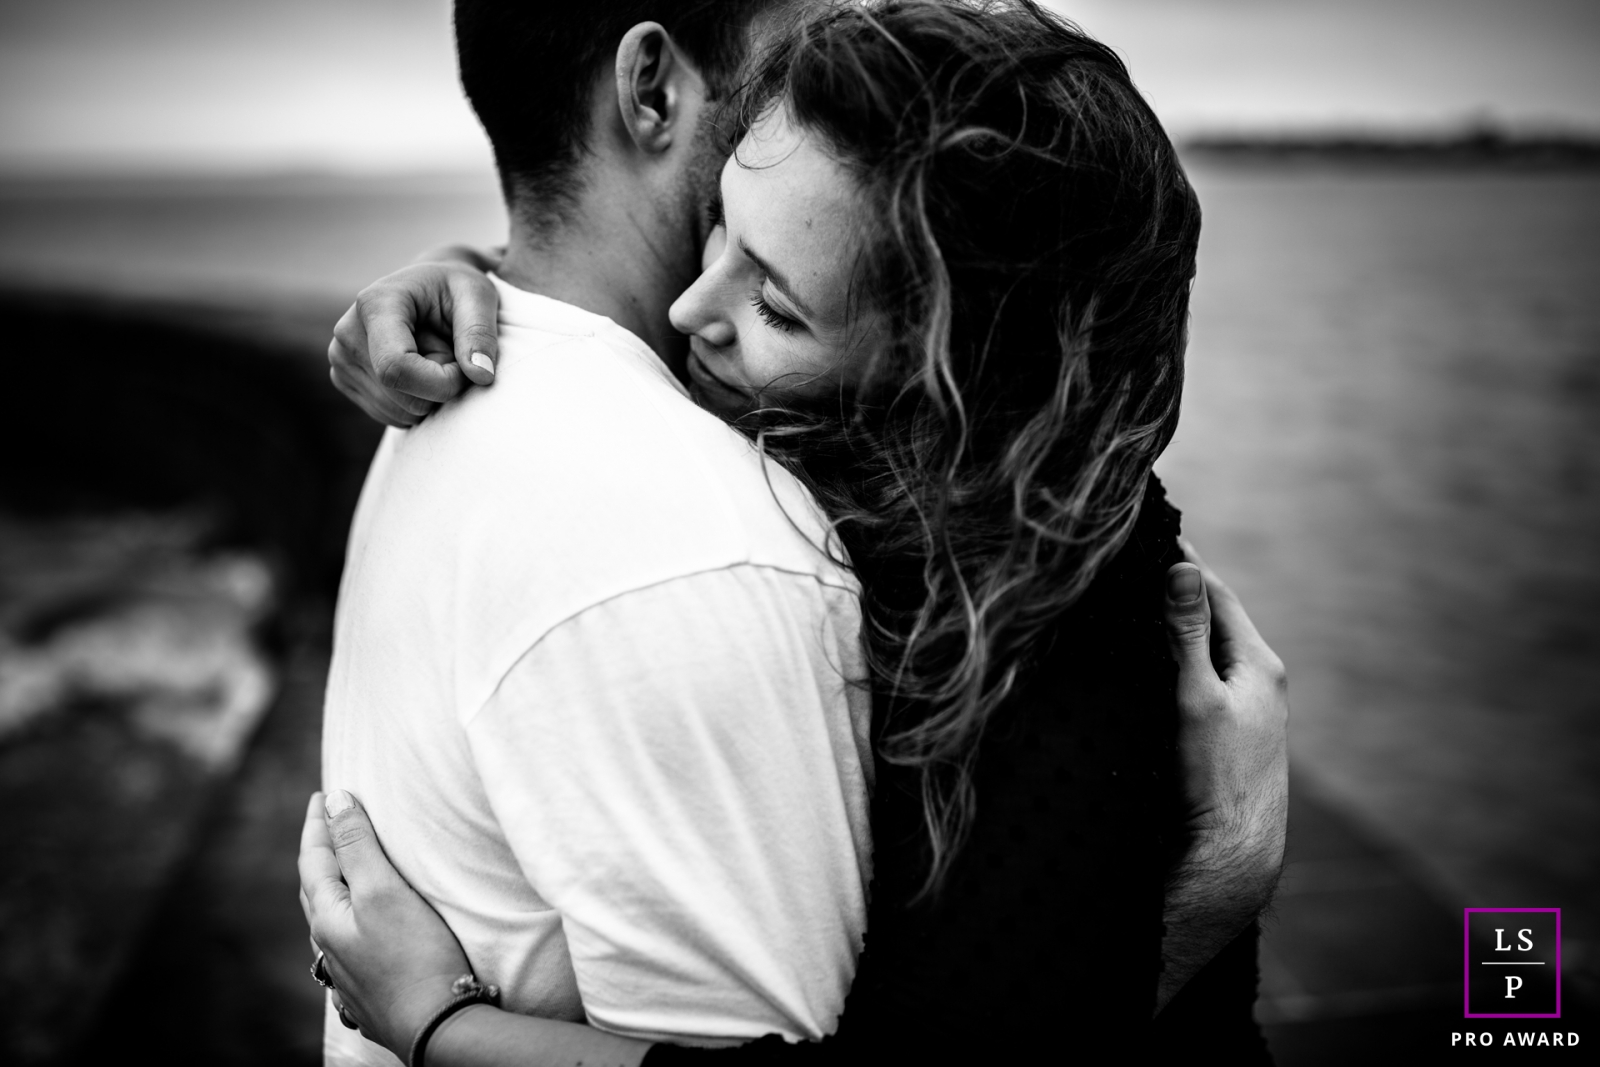 Paris Ile-de-France couple portrait photography. The perfect hug. Lifestyle Pictures at the water.